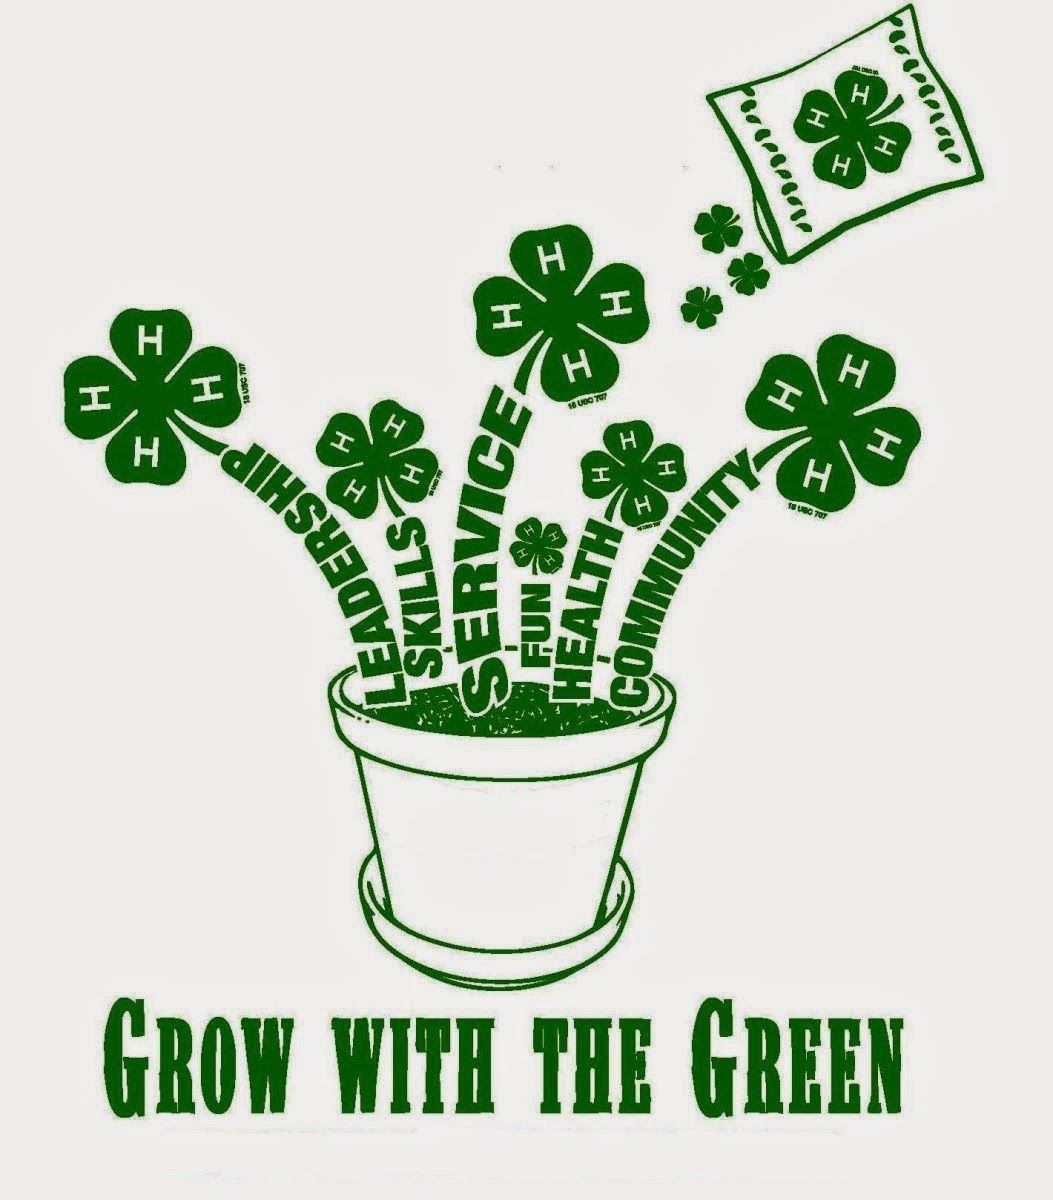 medium resolution of grow with the green would be great with our growing with kids garden 4 h